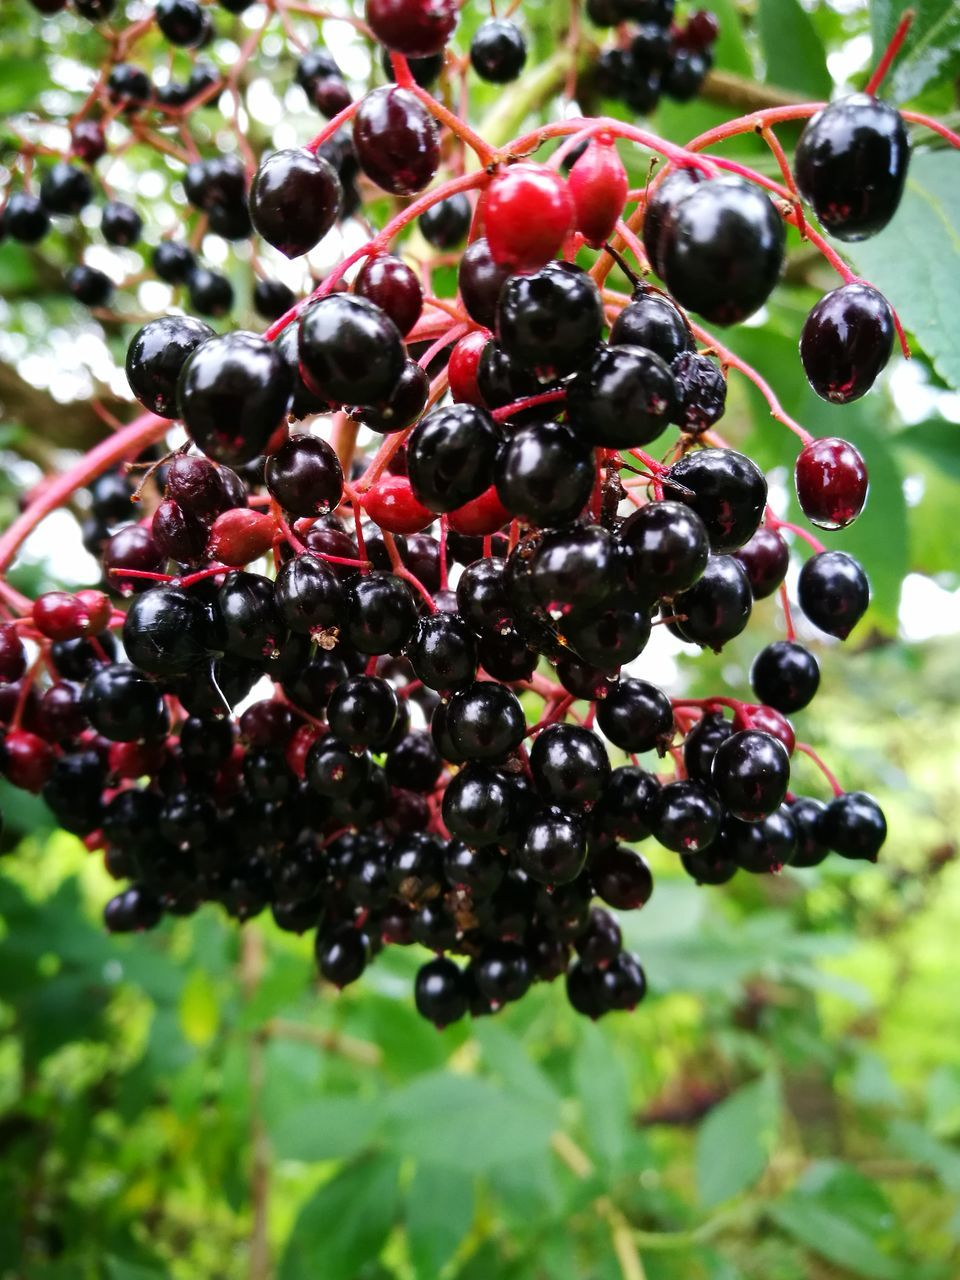 fruit, food and drink, growth, grape, healthy eating, blackberry, agriculture, nature, outdoors, bunch, freshness, red, ripe, no people, close-up, day, vineyard, focus on foreground, black color, winemaking, tree, food